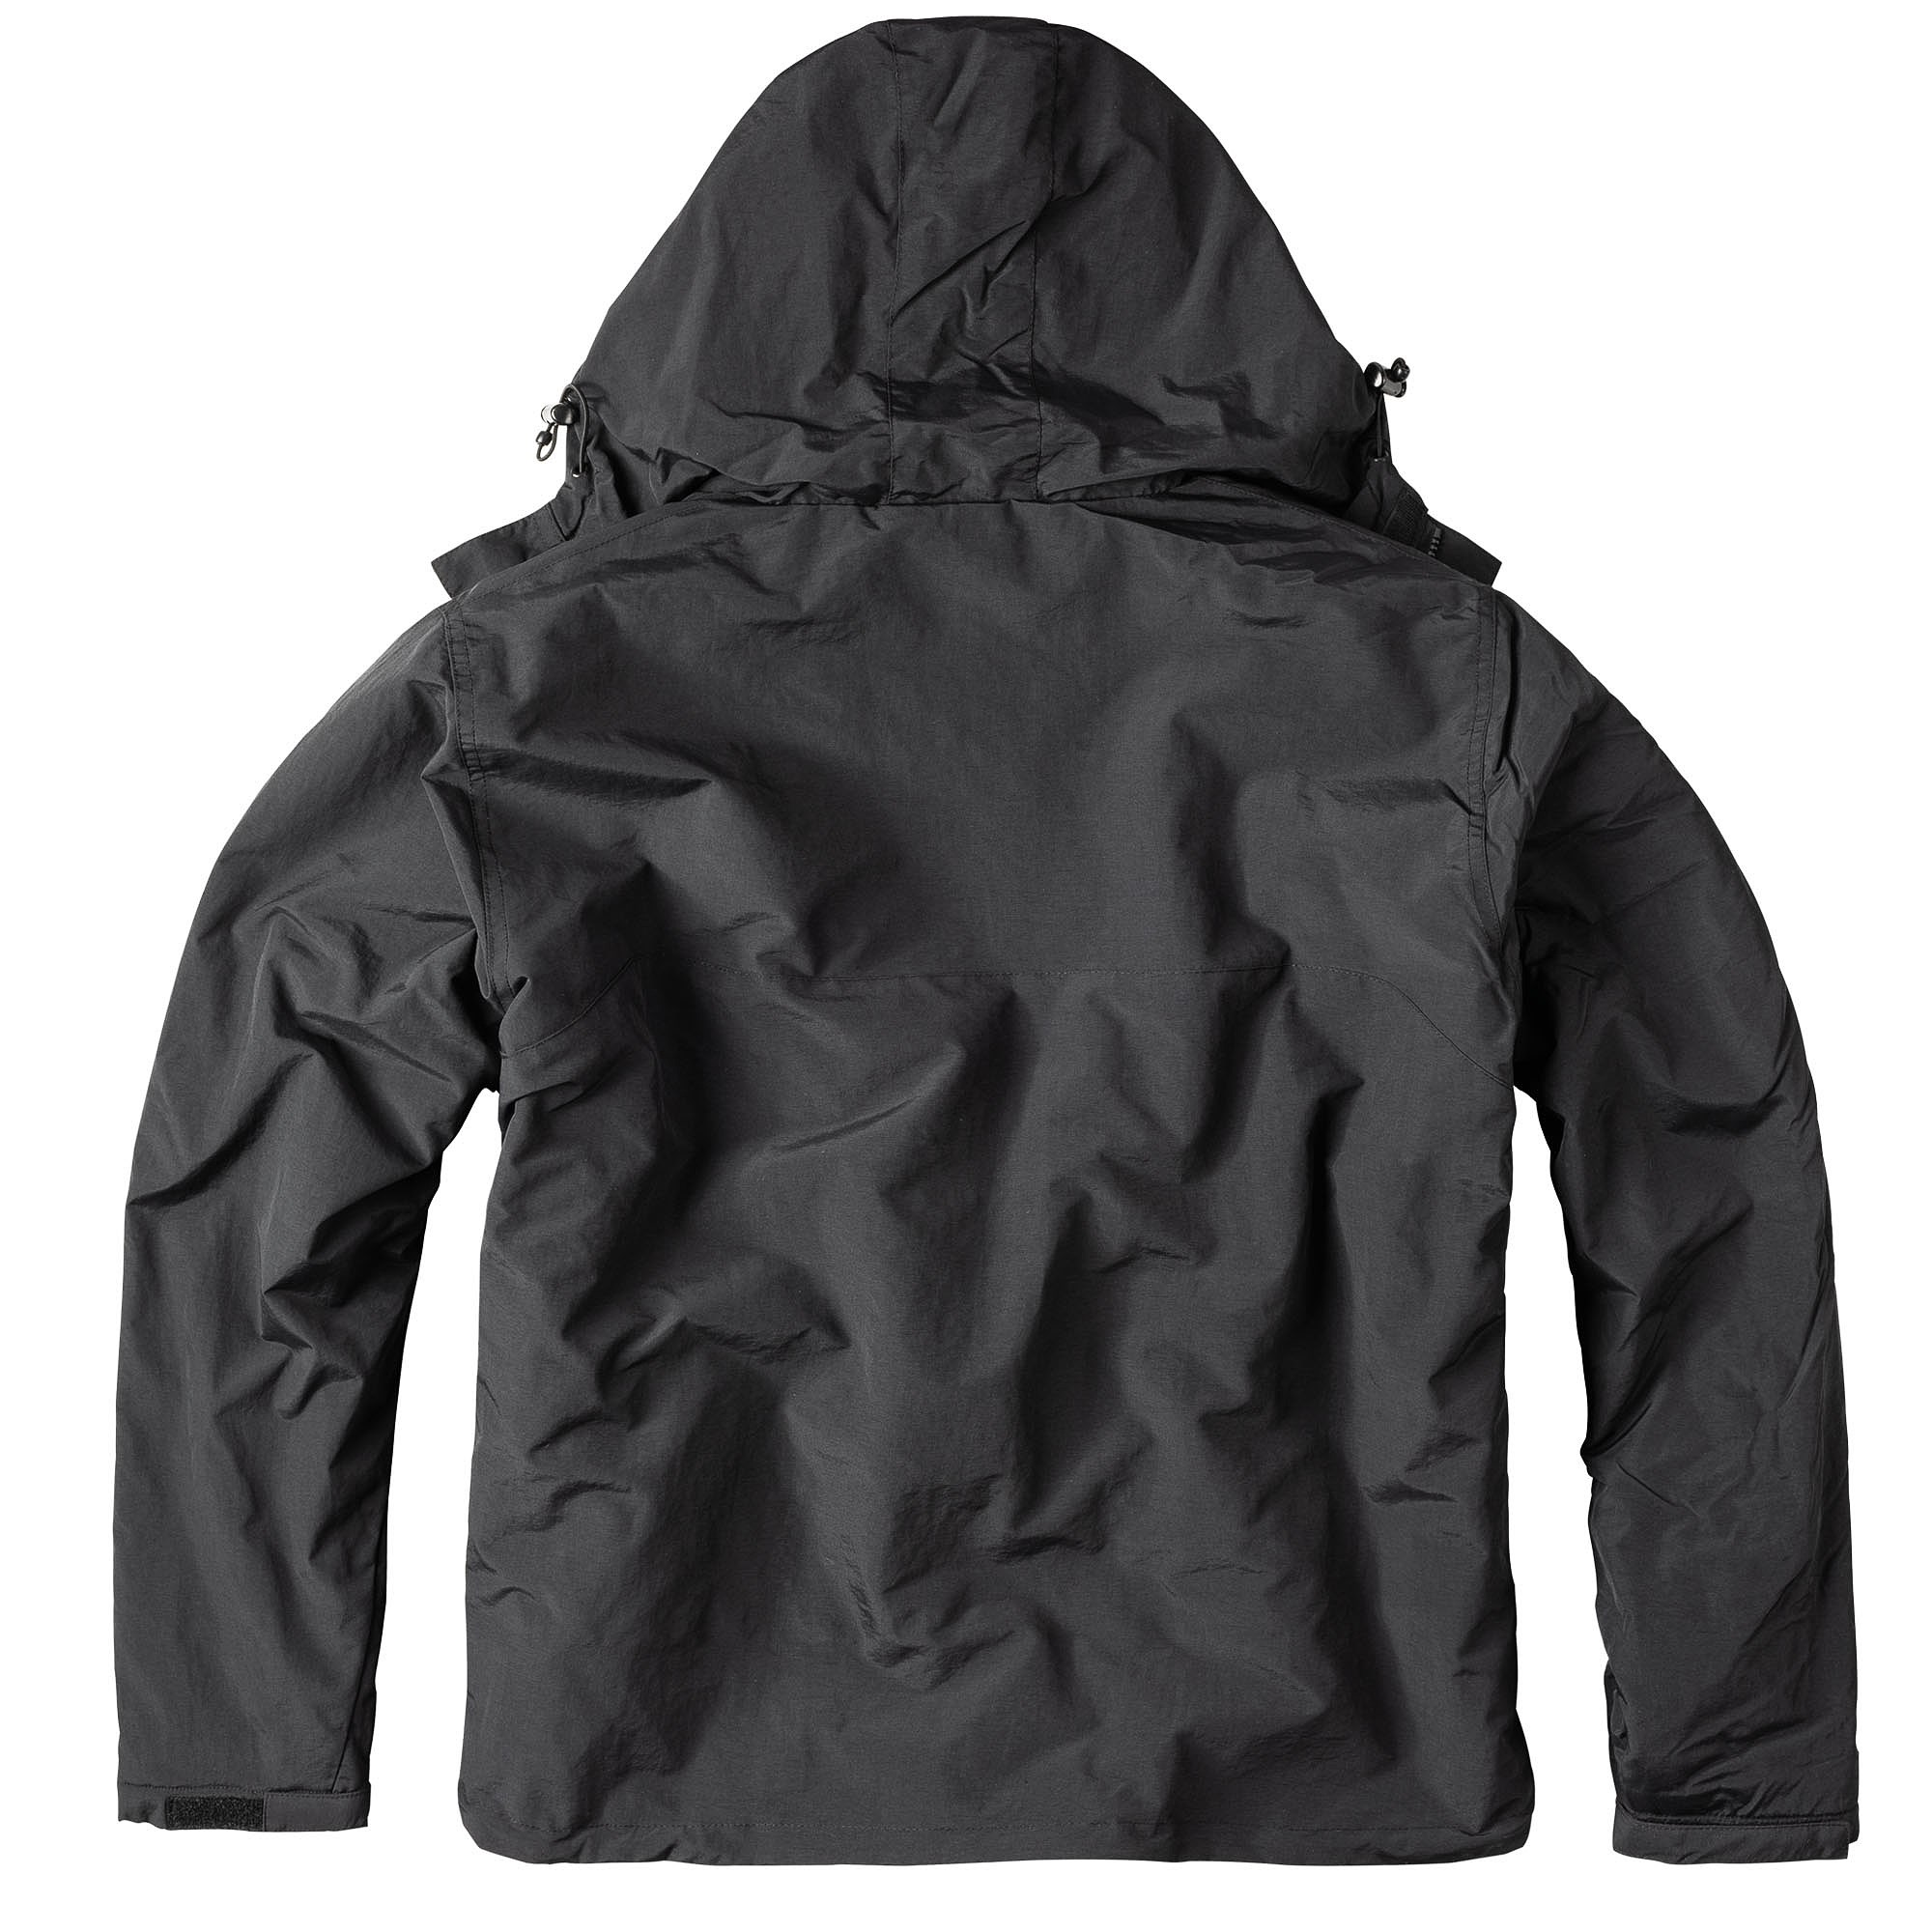 Bunda WINDBREAKER ZIPPER ČERNÁ SURPLUS 20-7002-03 L-11